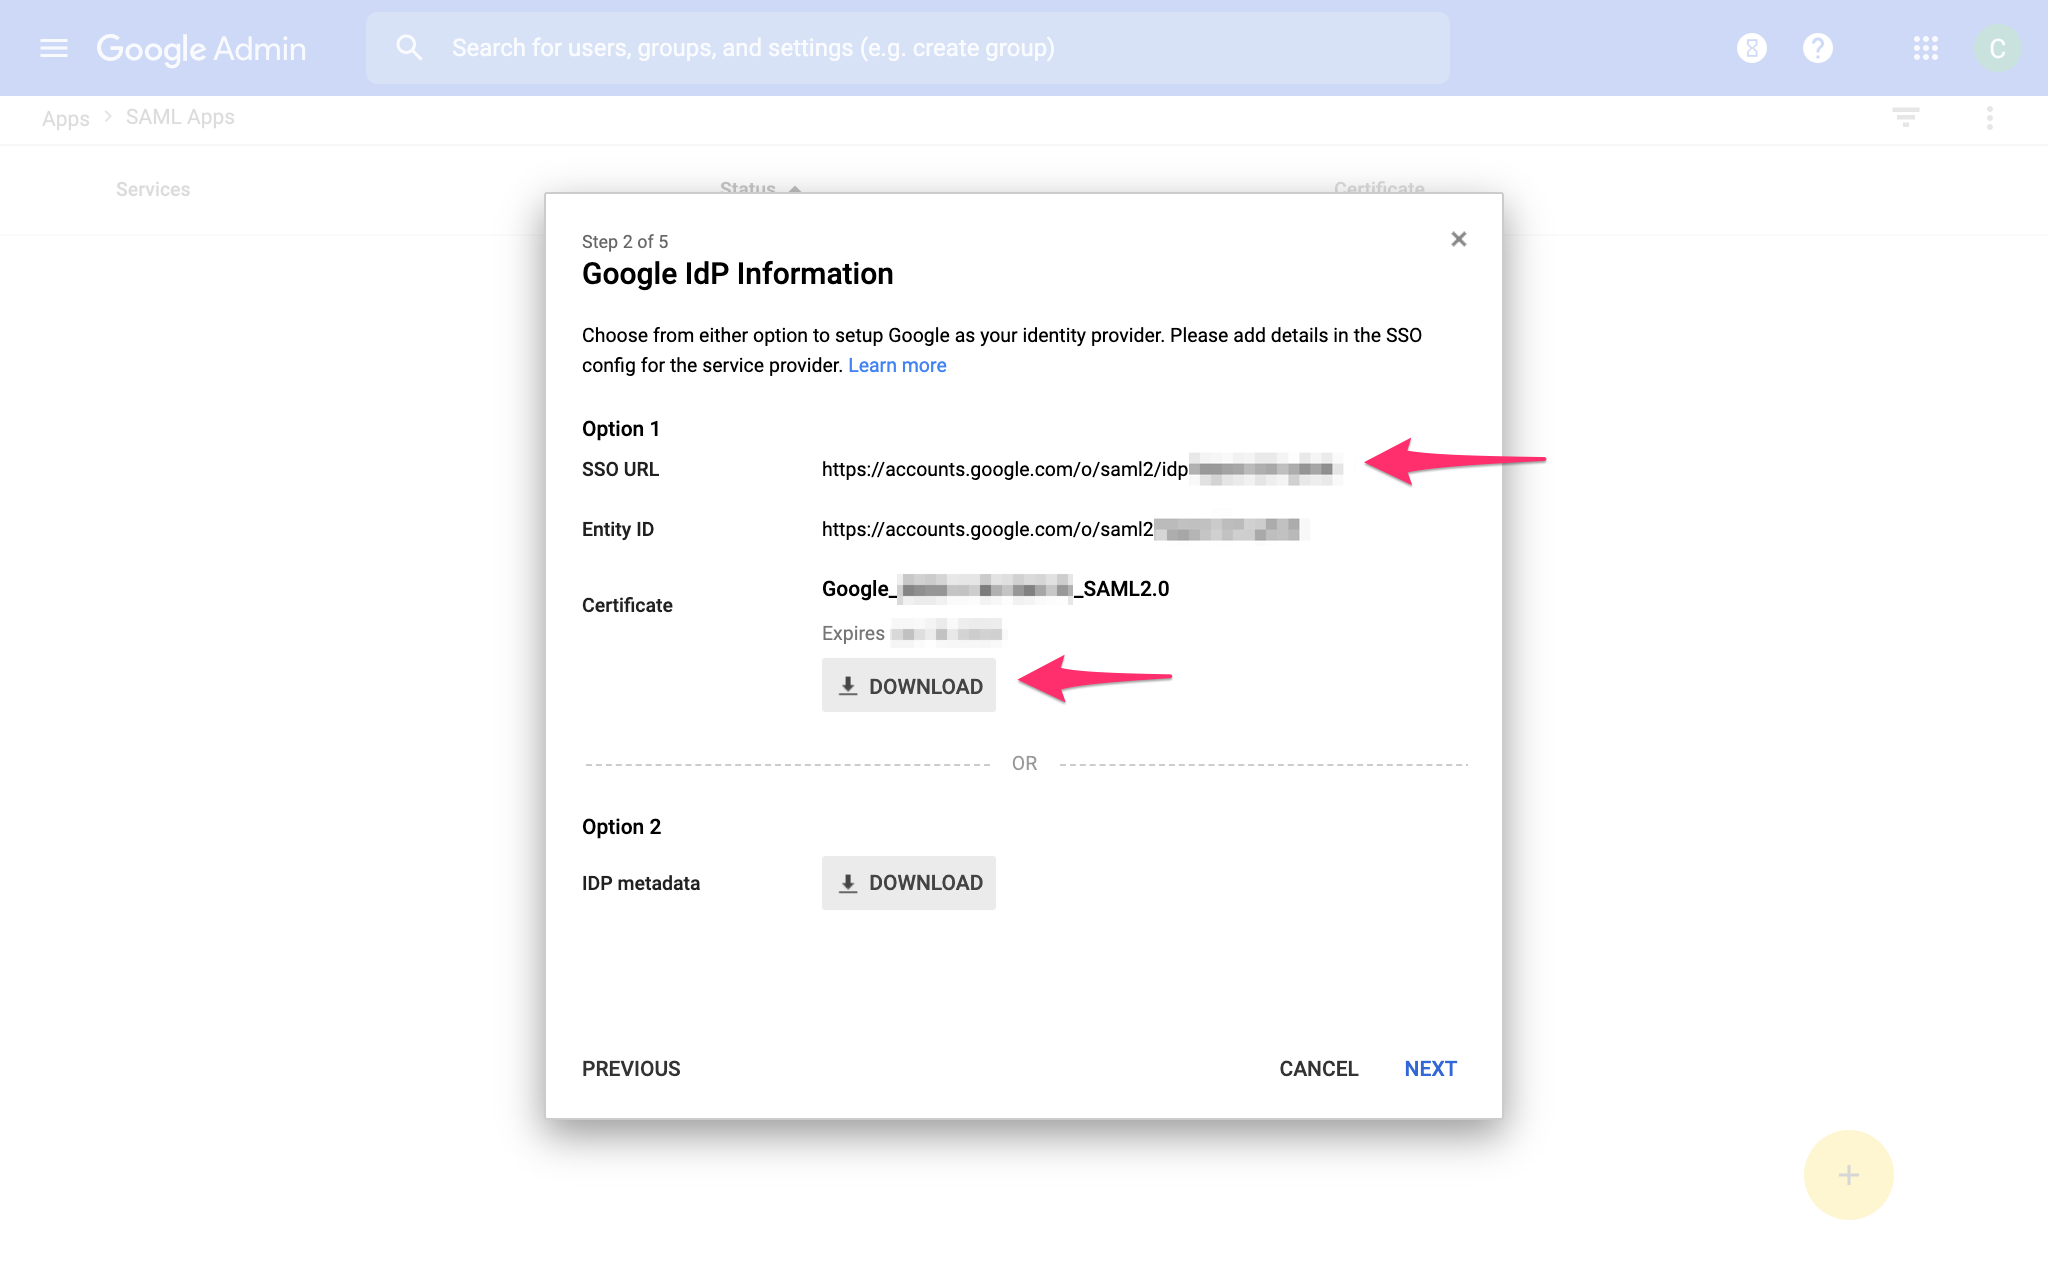 G Suite SSO App Information Screen